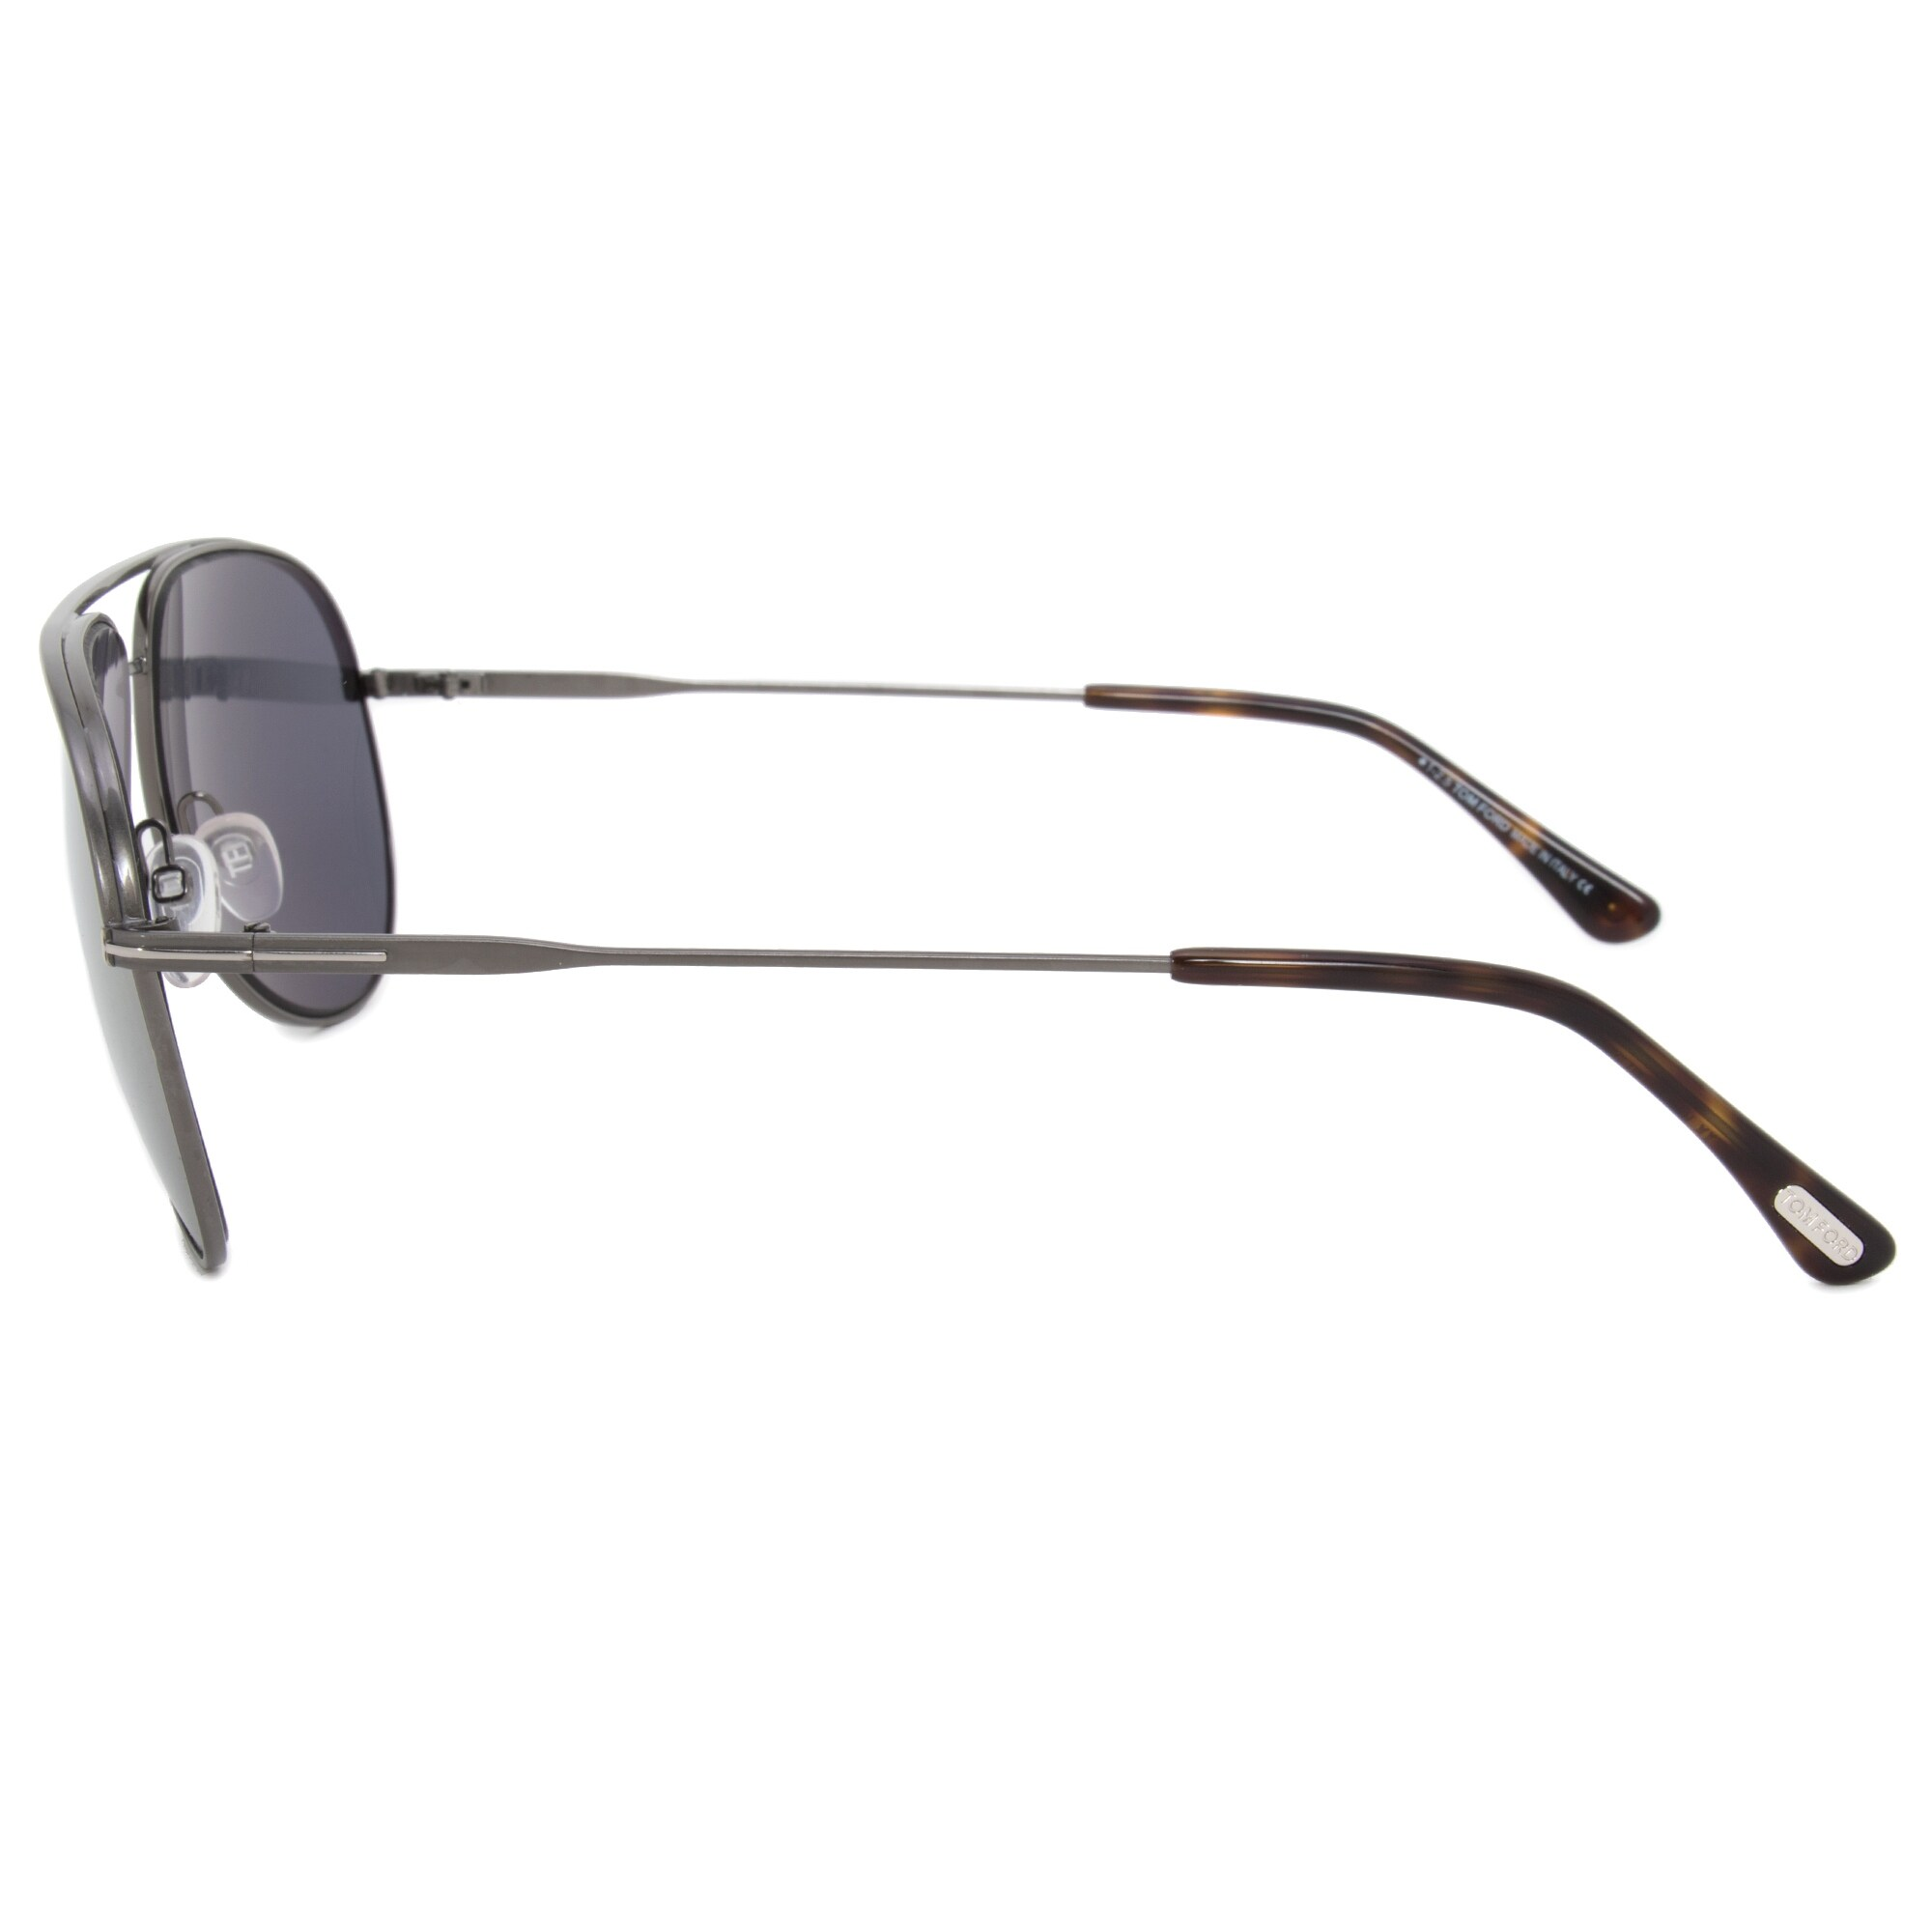 68bc652fd Shop Tom Ford Erin Aviator Sunglasses FT0466 13C 59 - Free Shipping Today -  Overstock - 21408845